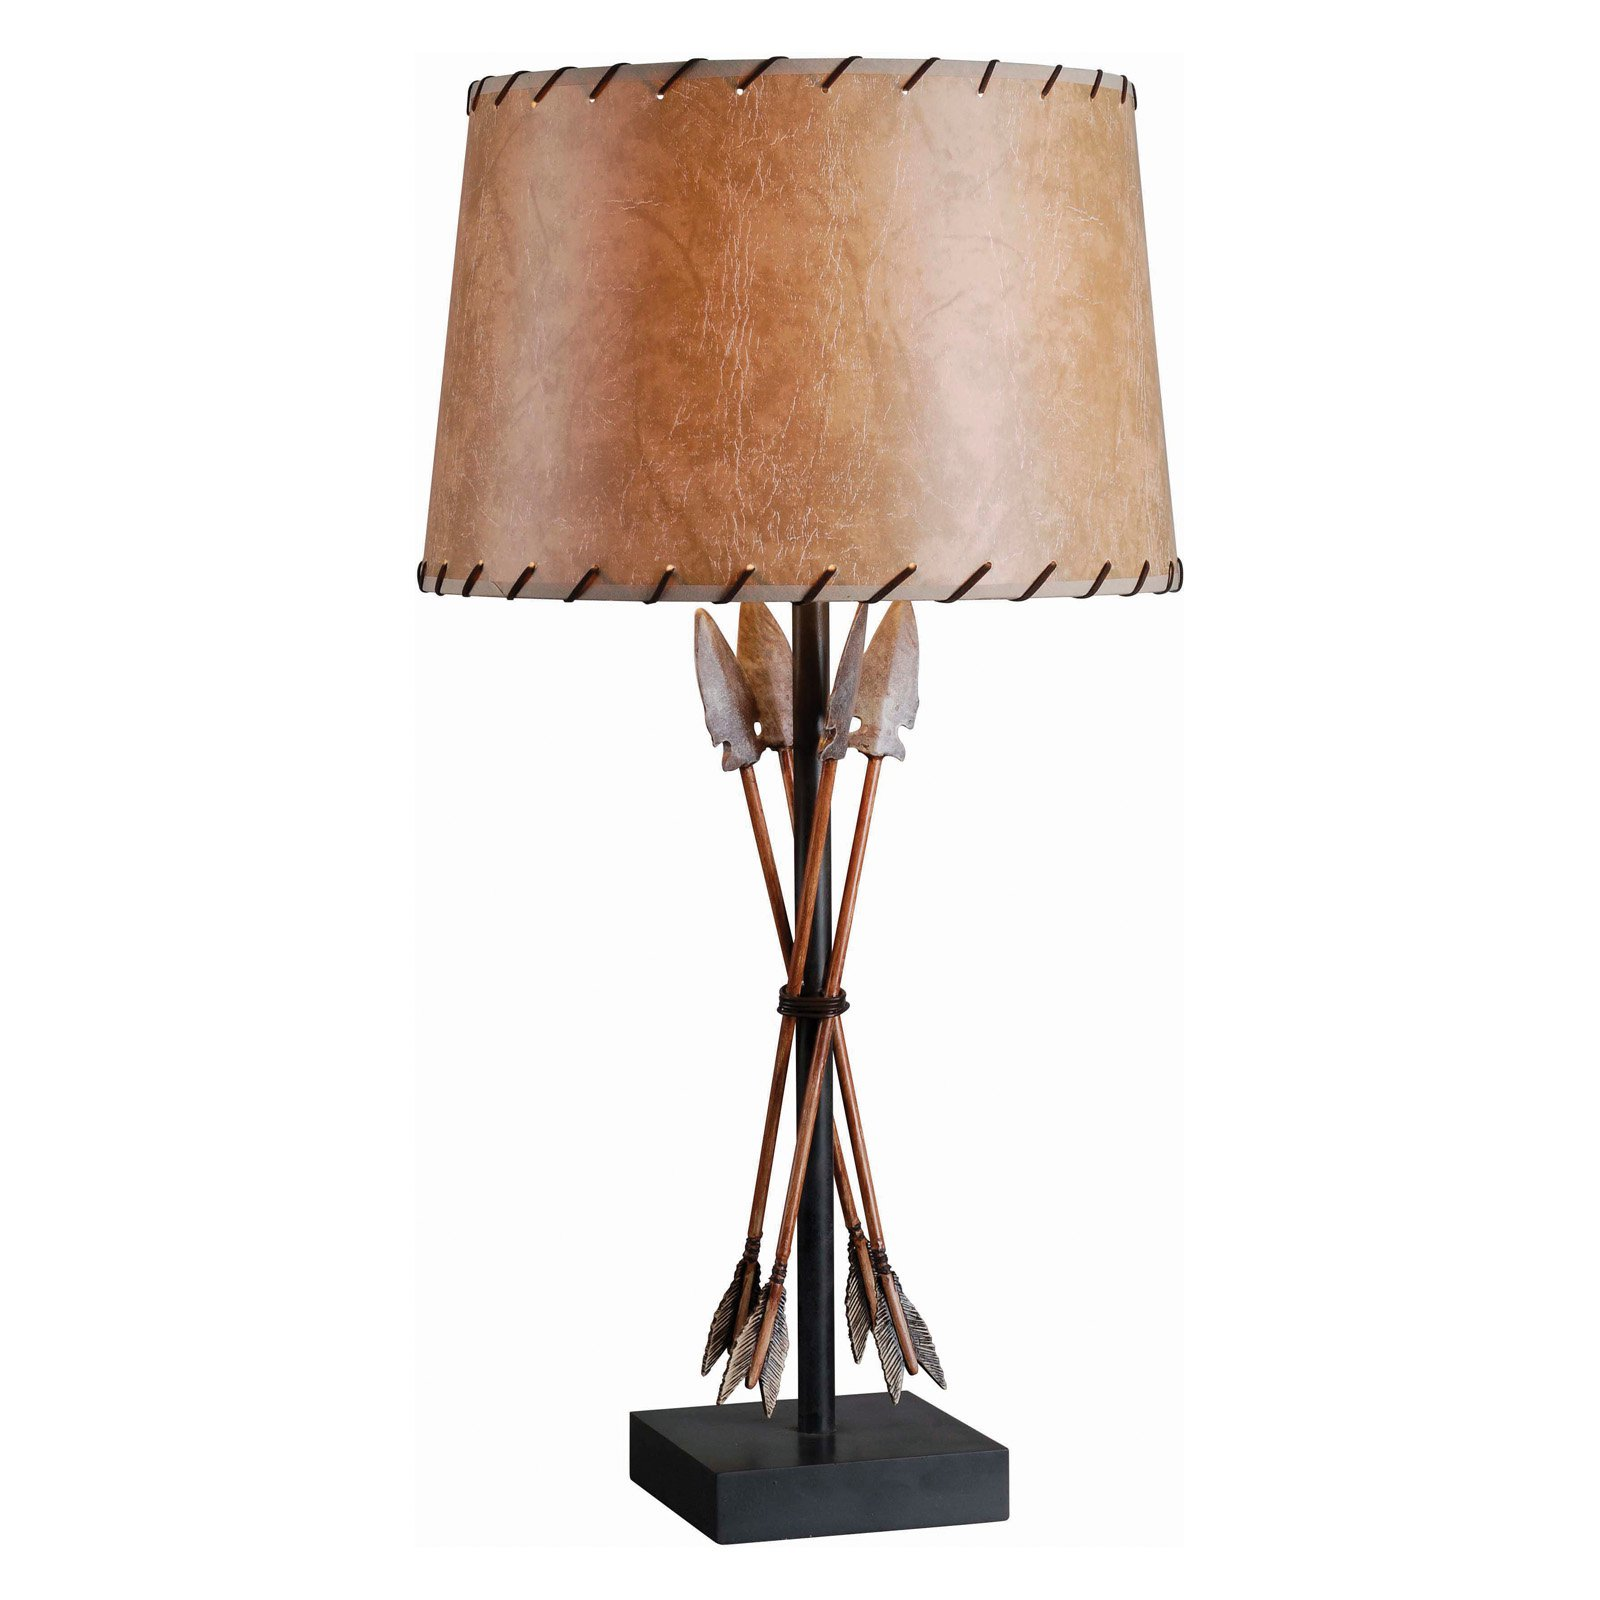 Kenroy Home Bound Arrow Table Lamp, Antique Wash